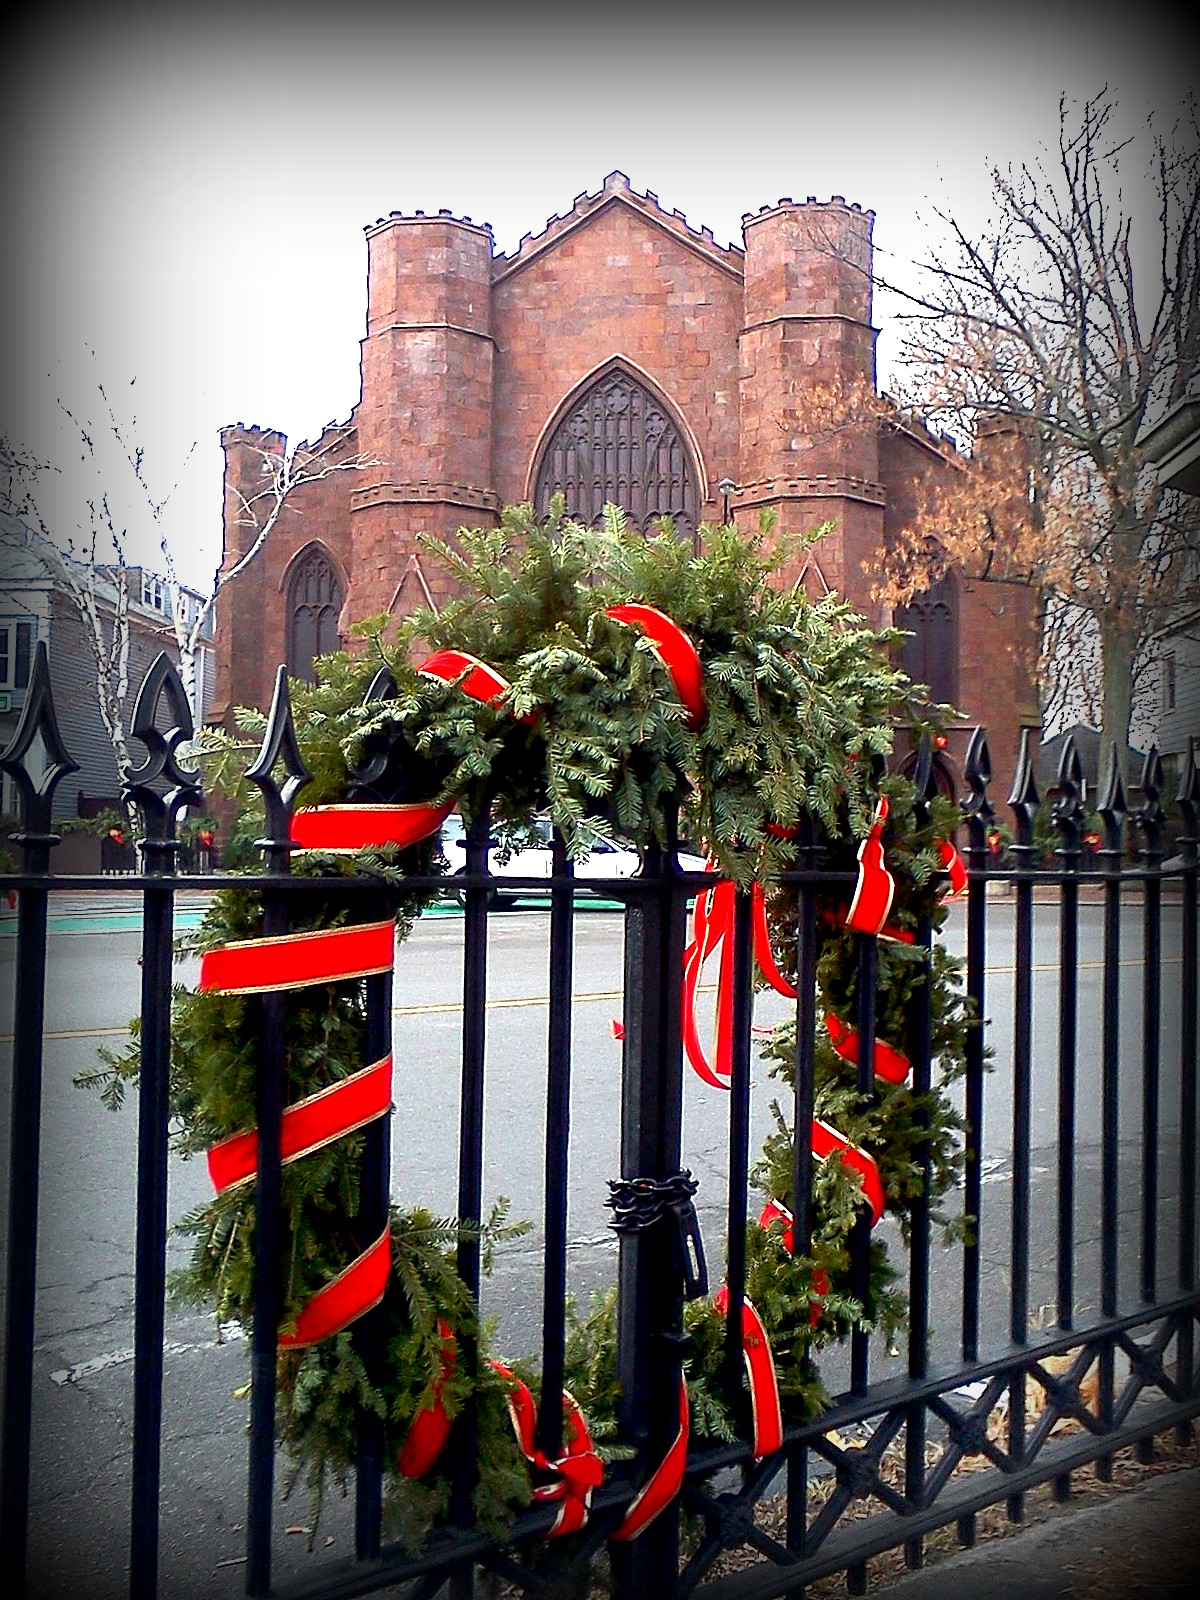 salem common, gate, wreath, witch museum, winter, christmas, massachusetts